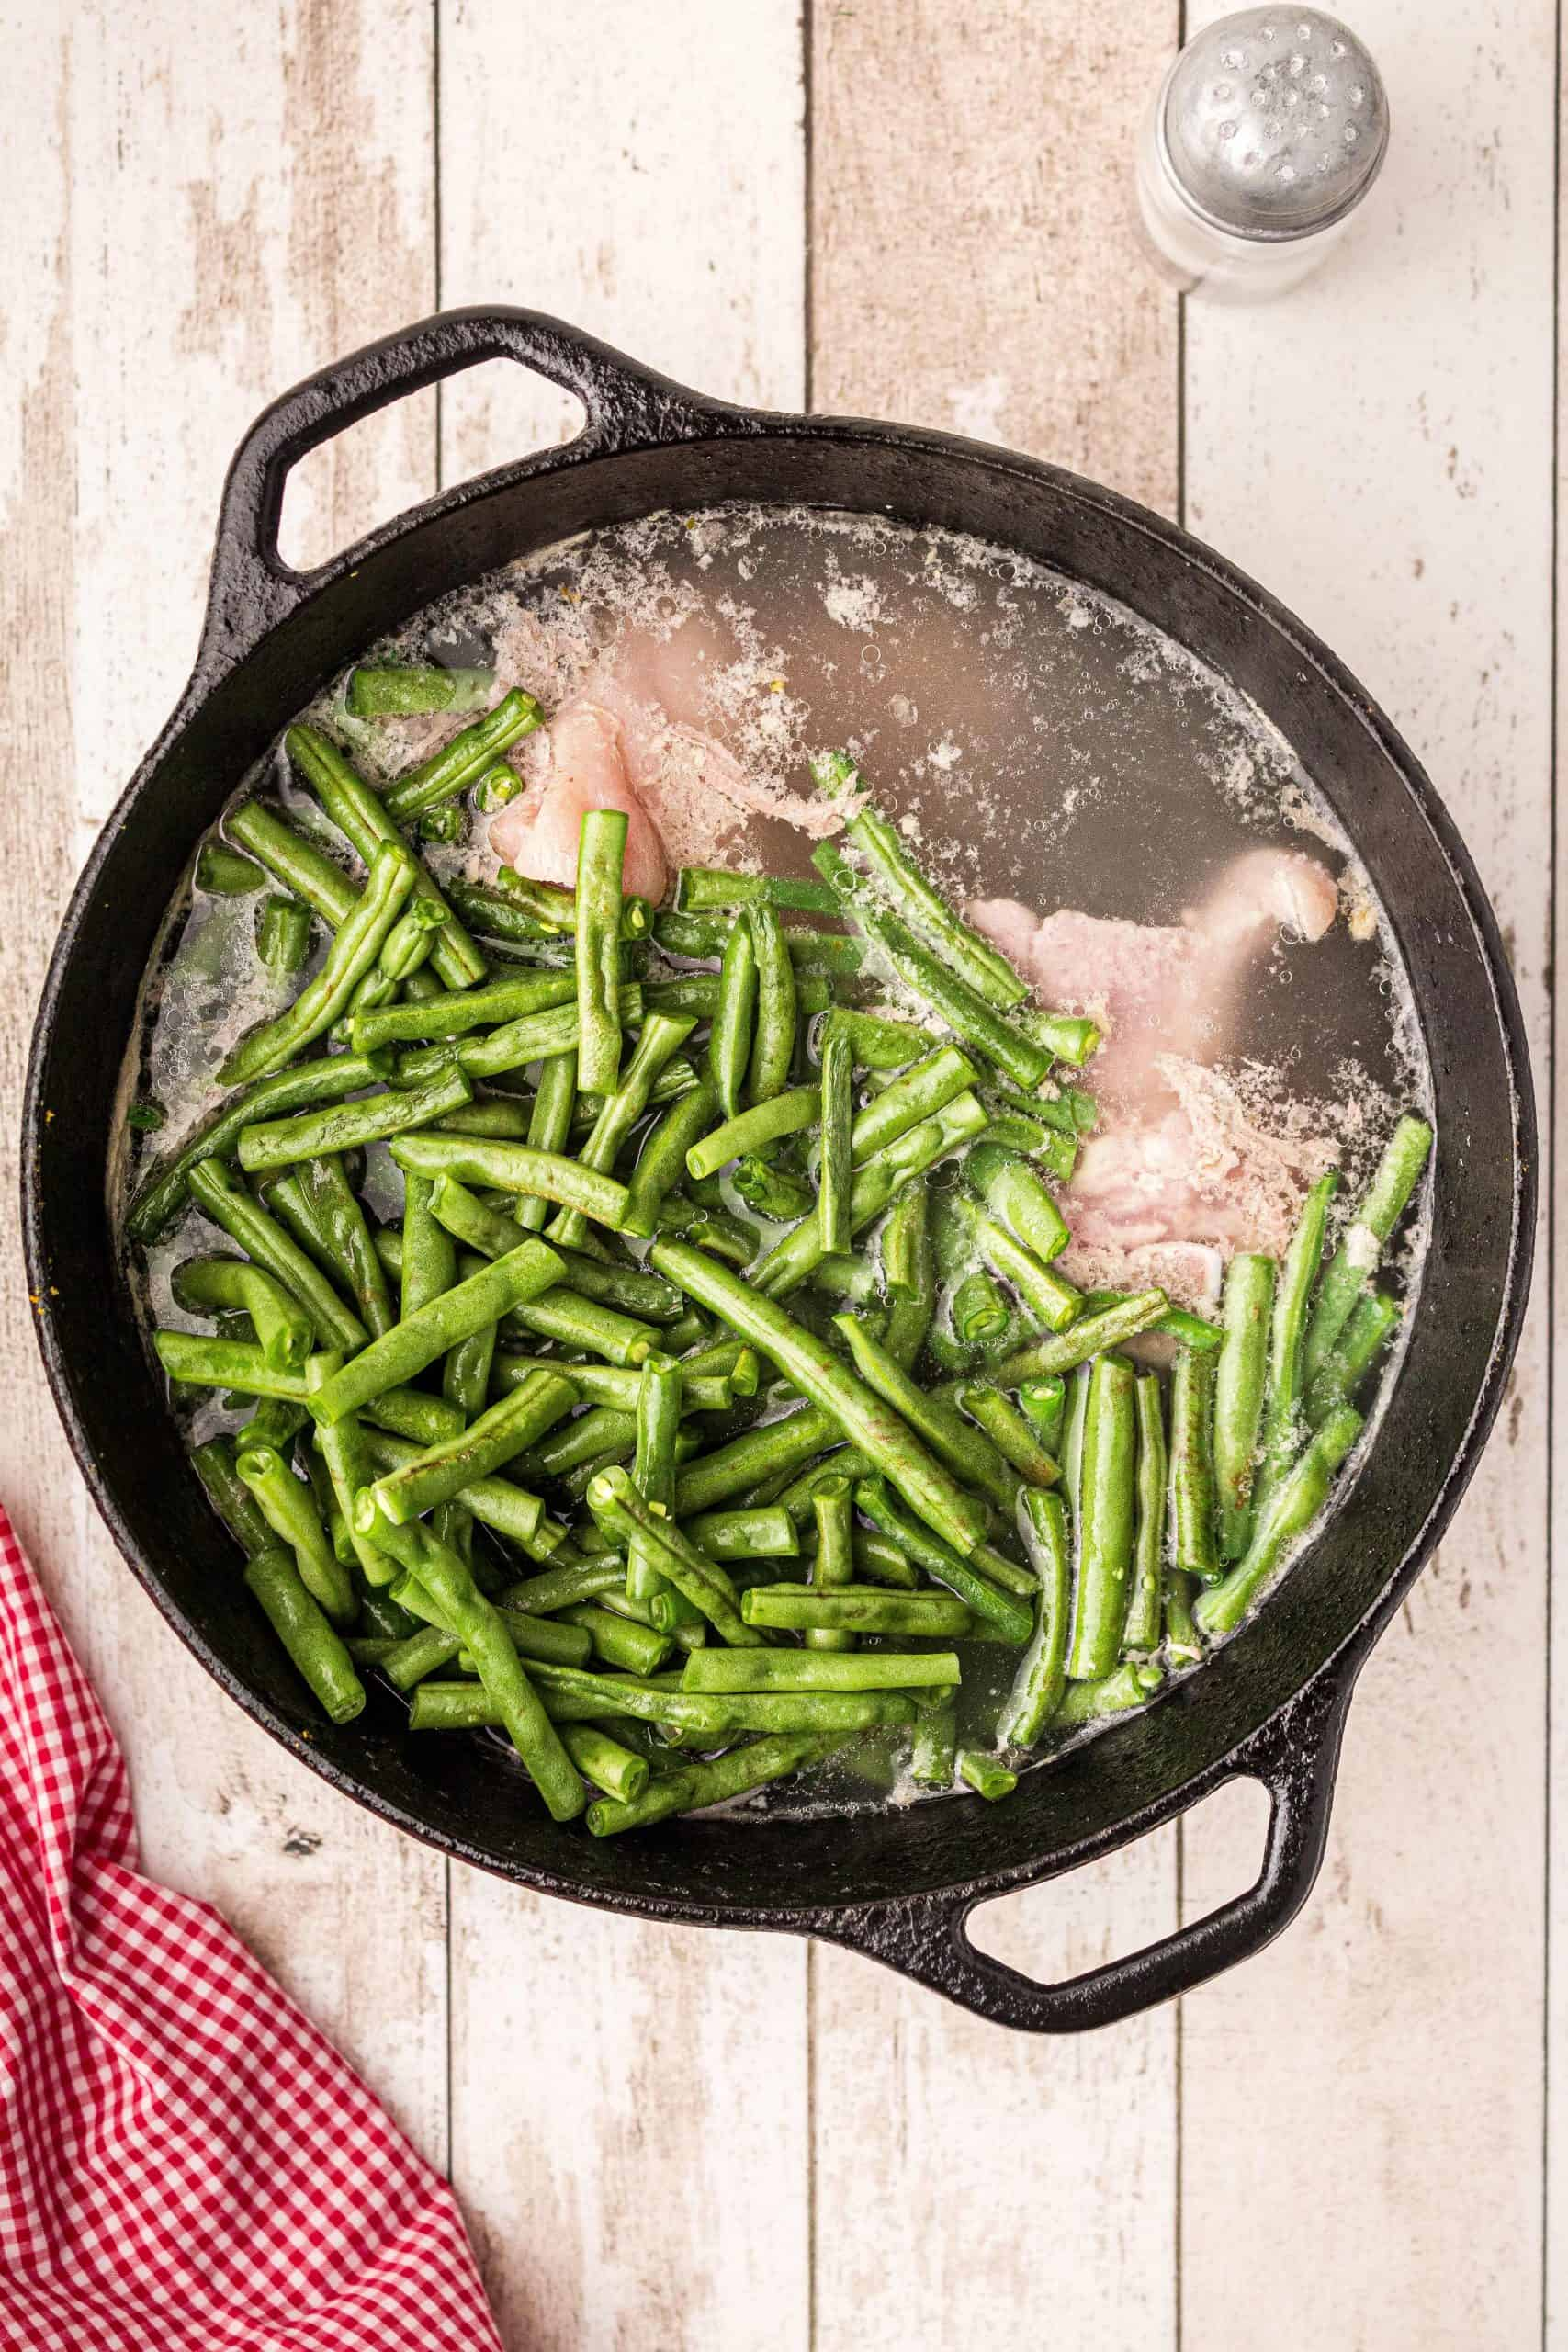 Cast iron cooking pot with ham hock broth and fresh green beans added.